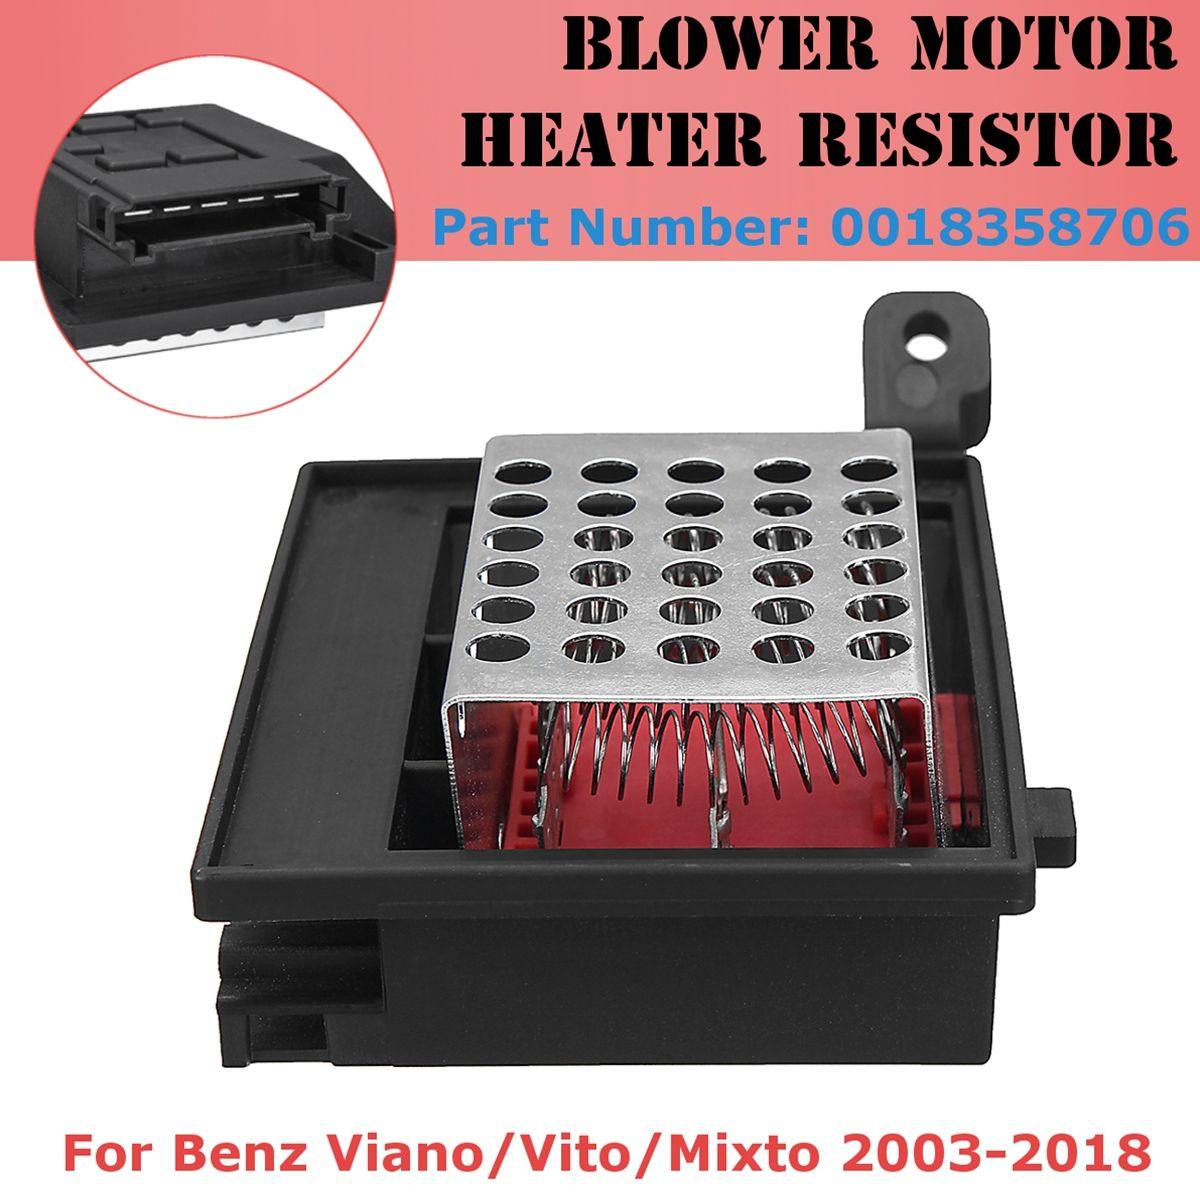 OE/OEM Number 0018358706 A0018358706 9ML351332-2 Blower Fan Motor Heater Resistor Control for Benz Viano Vito Vito/Mixto03-18